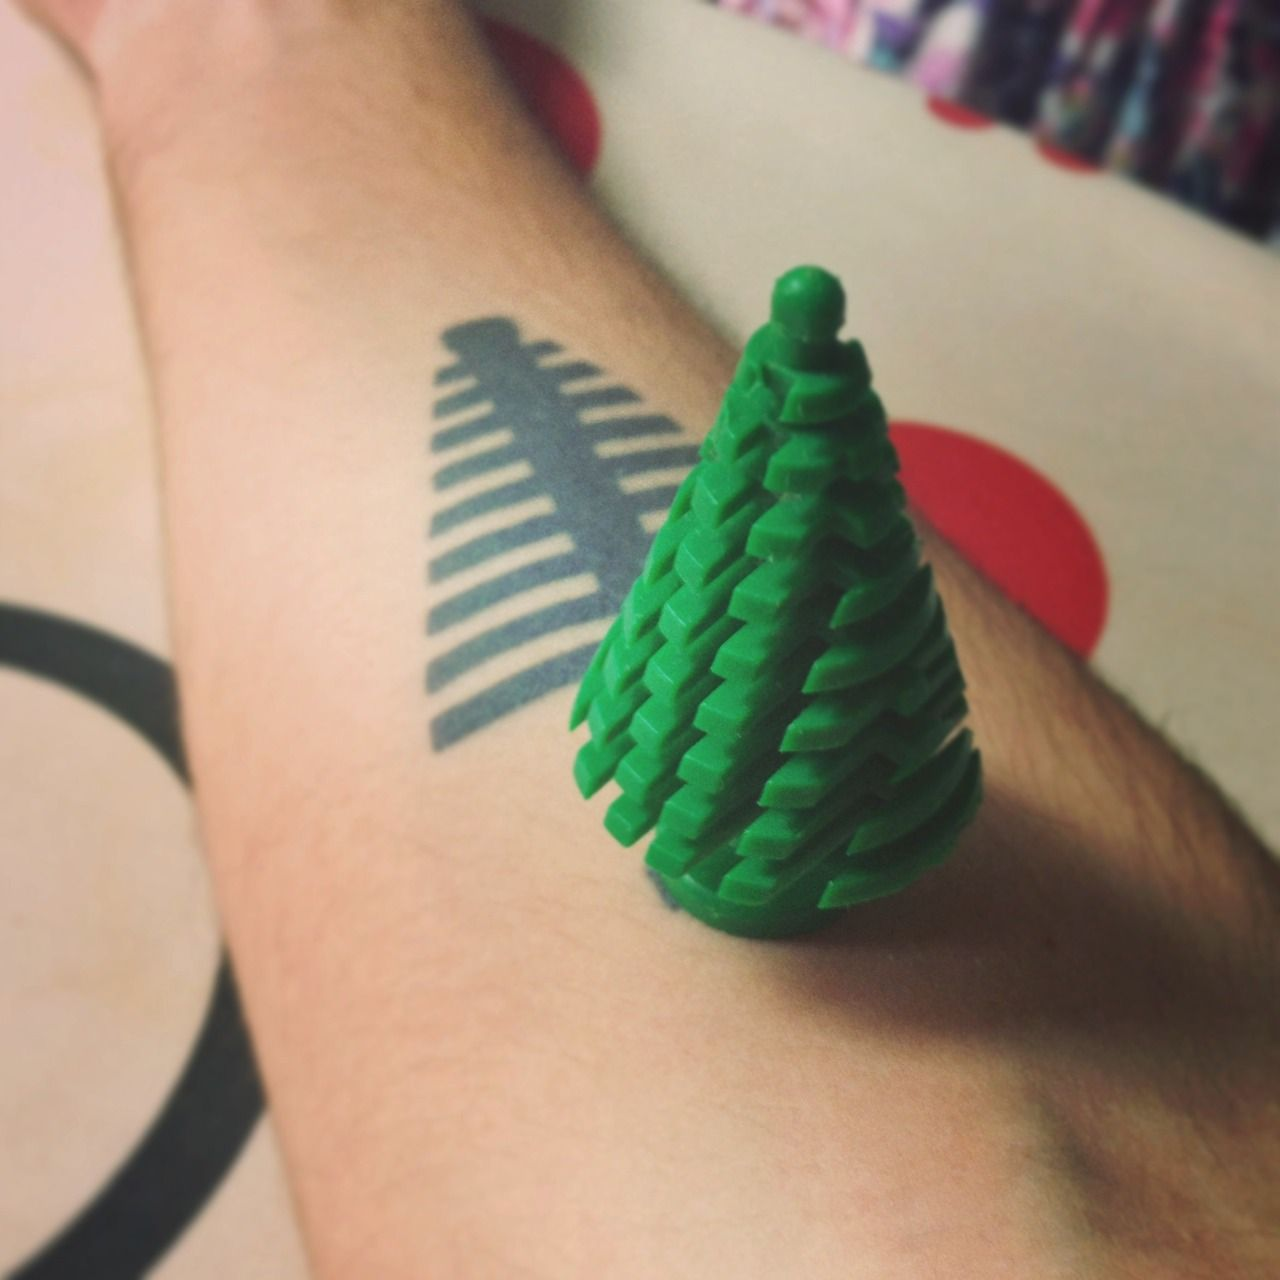 ahaha ! this picture is so creative, i love it !!! ^^ #tattoo #arm #LEGO